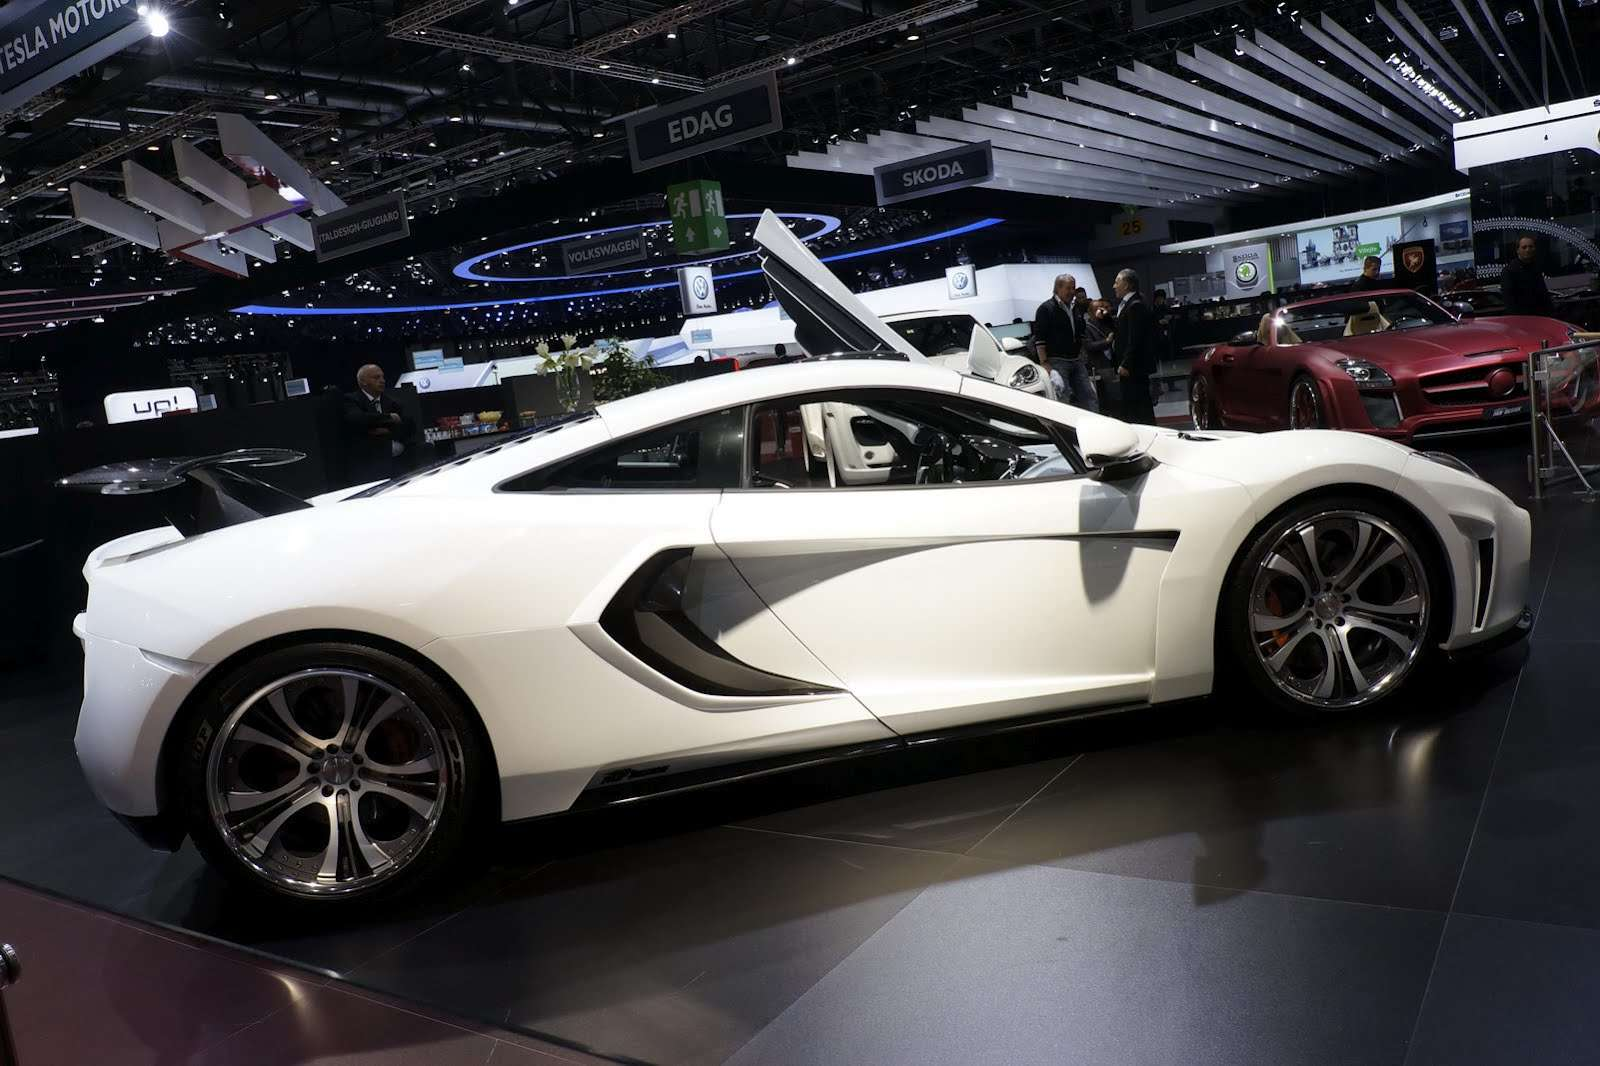 FAB Design McLaren MP4-12C Genewa 2012